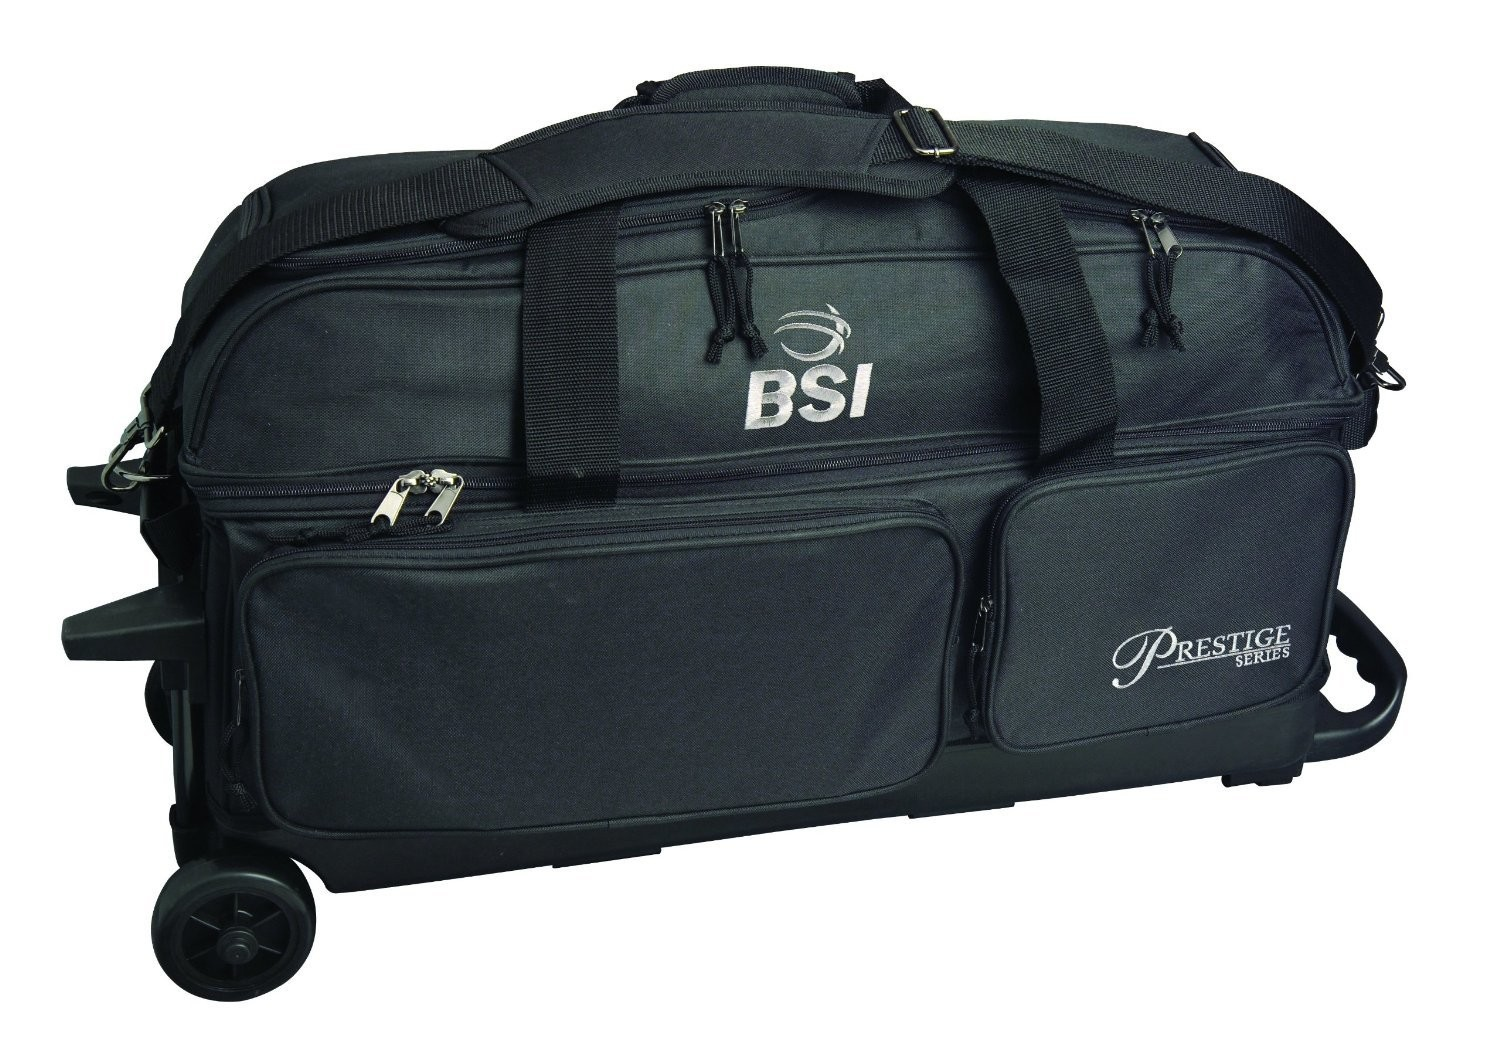 BSI Prestige Series Black 3 Ball Roller Bowling Bag